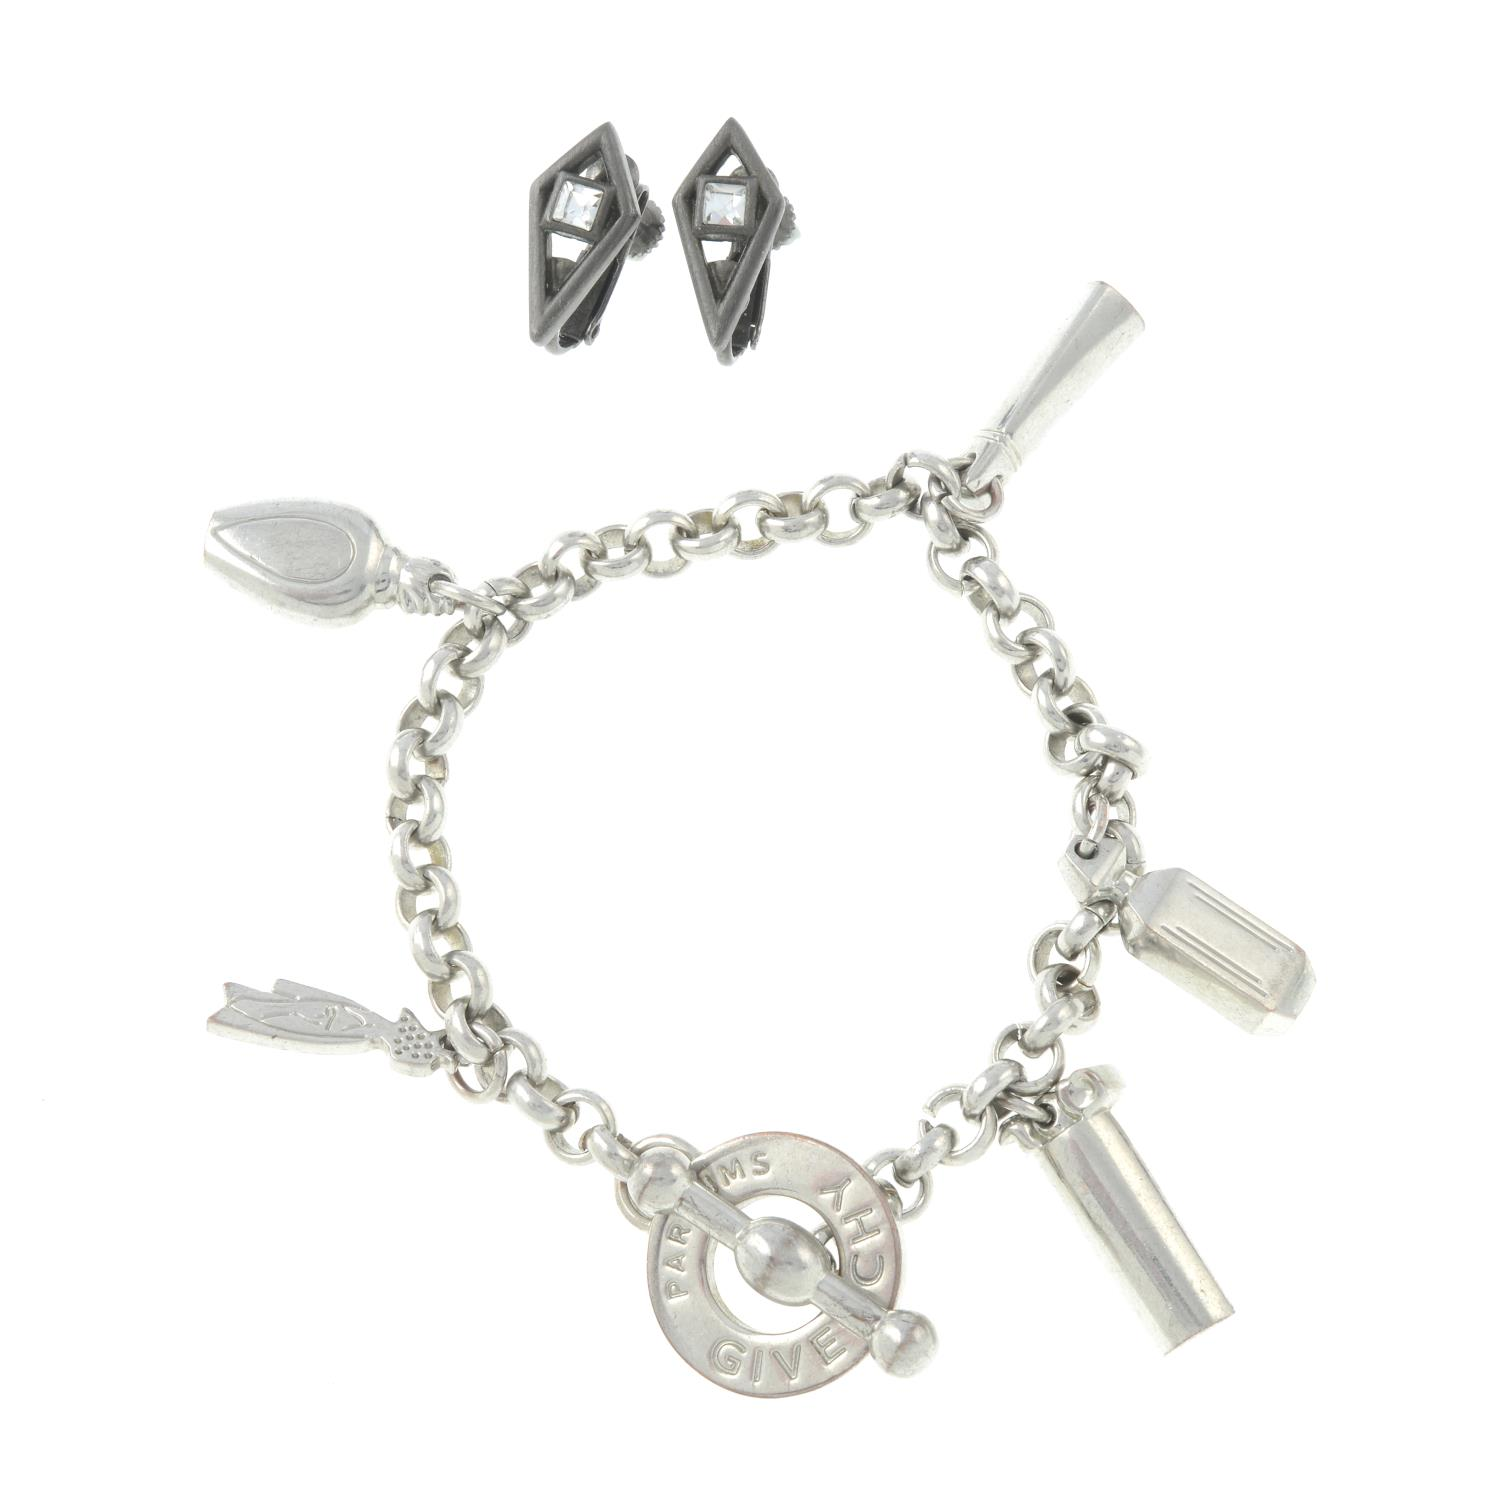 A pair of clip-on earrings and a charm bracelet,